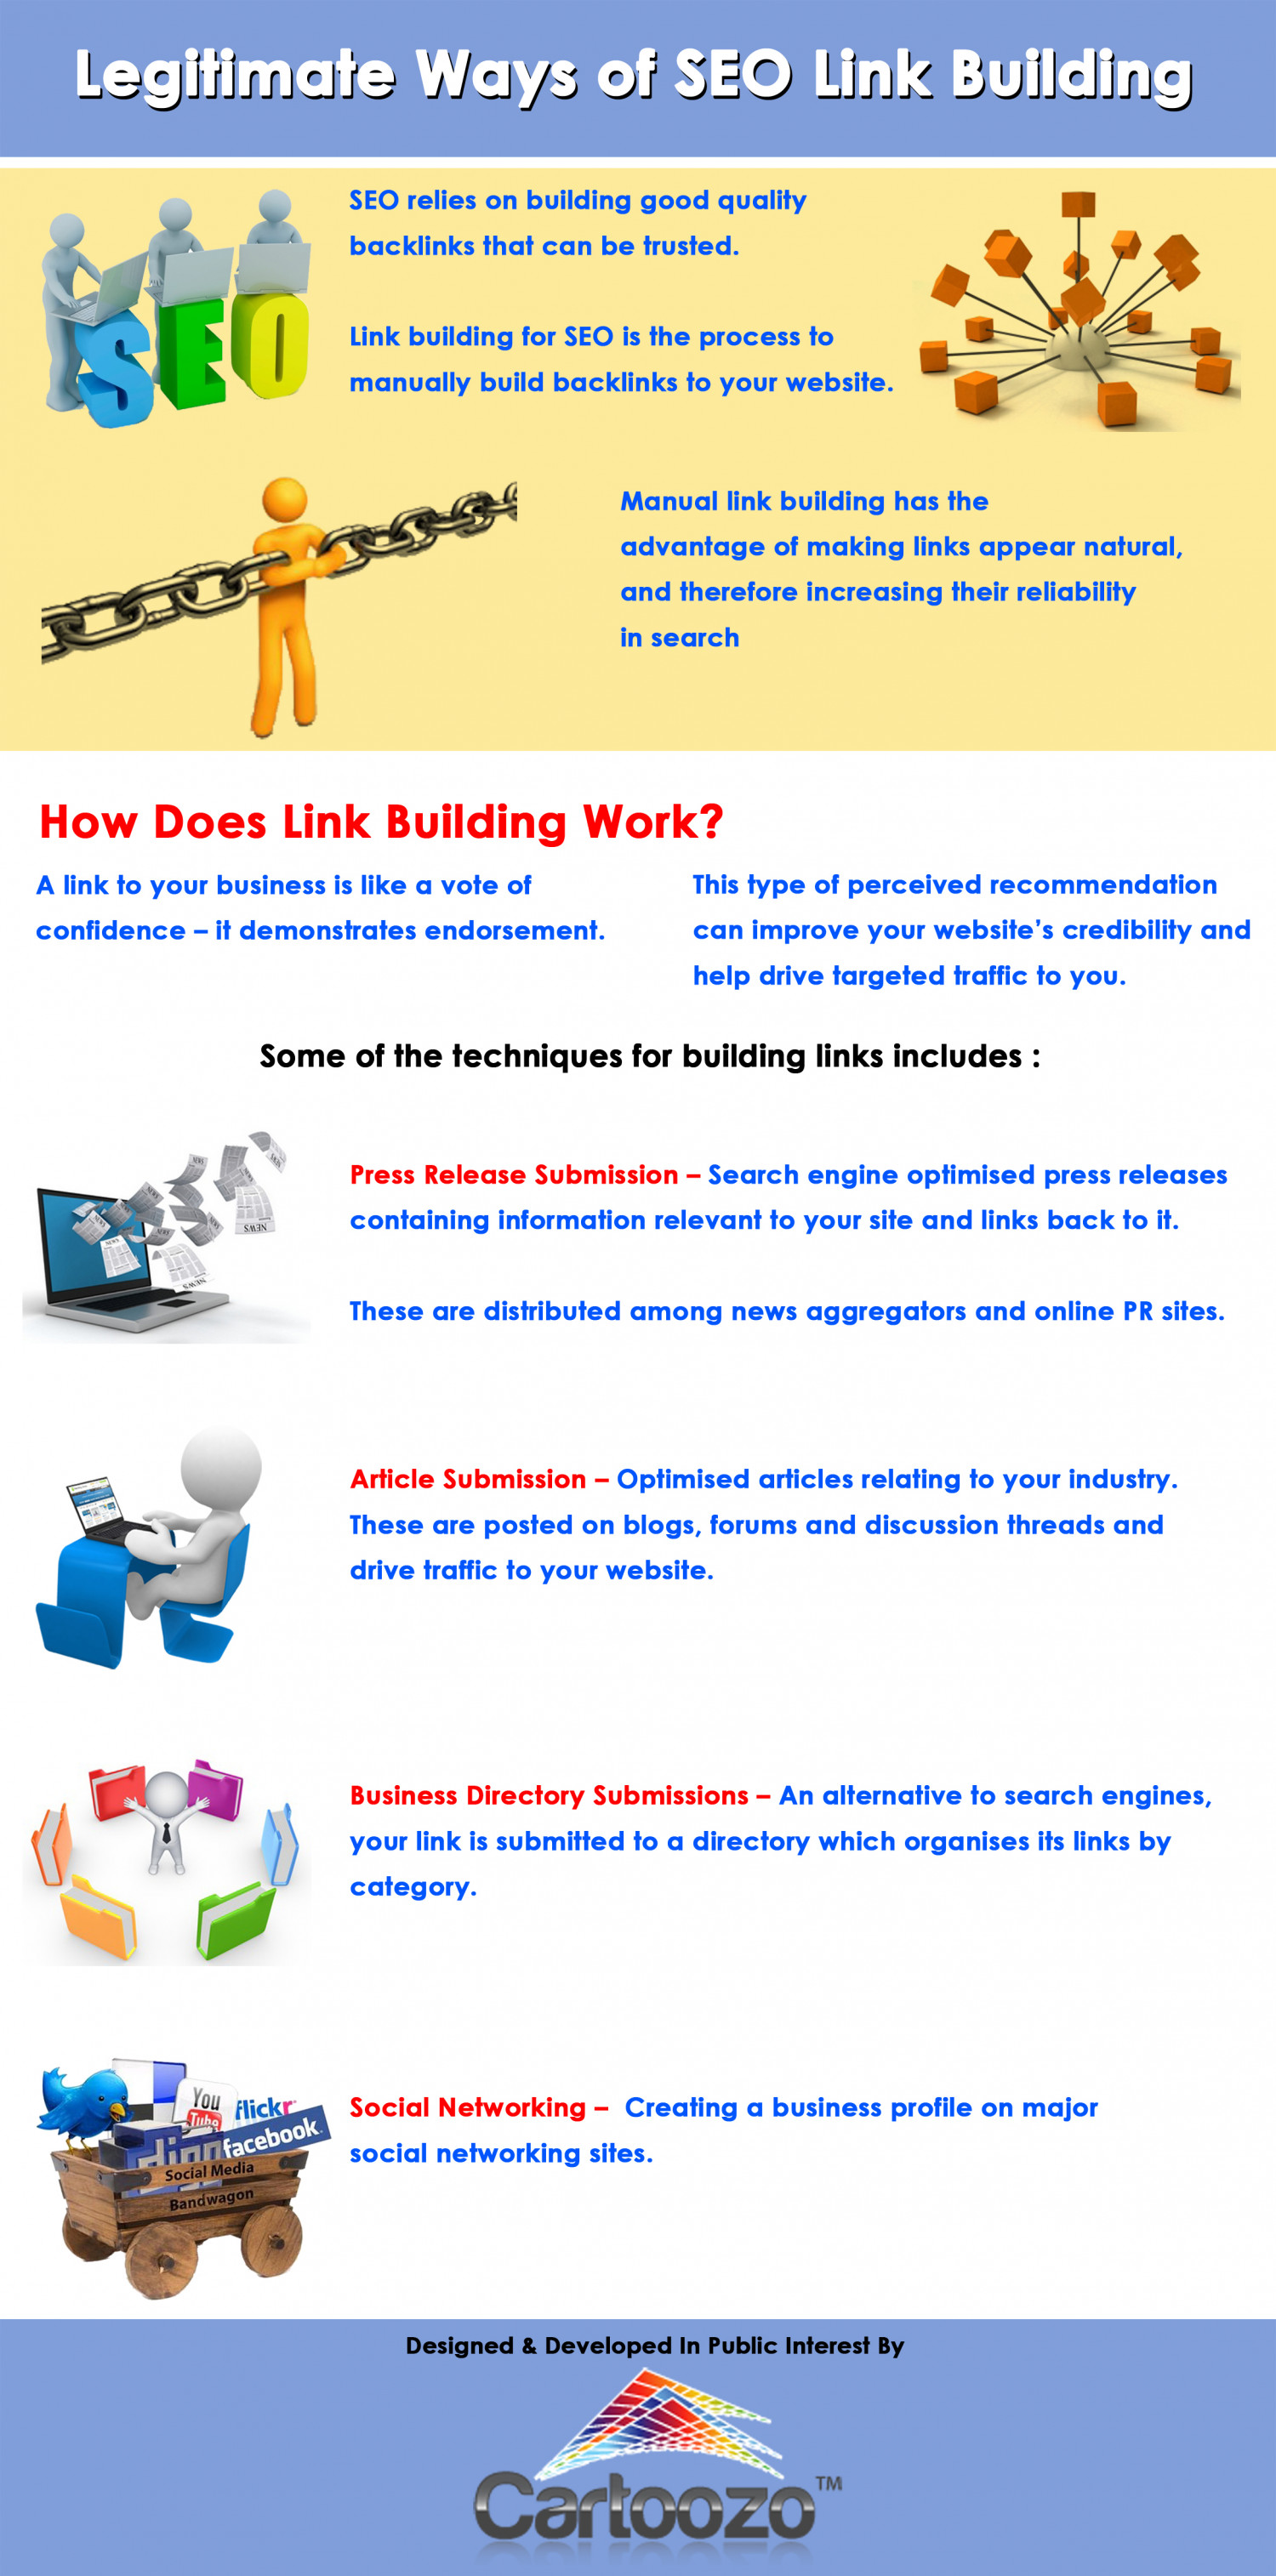 Legitimate Ways of SEO Link Building Infographic